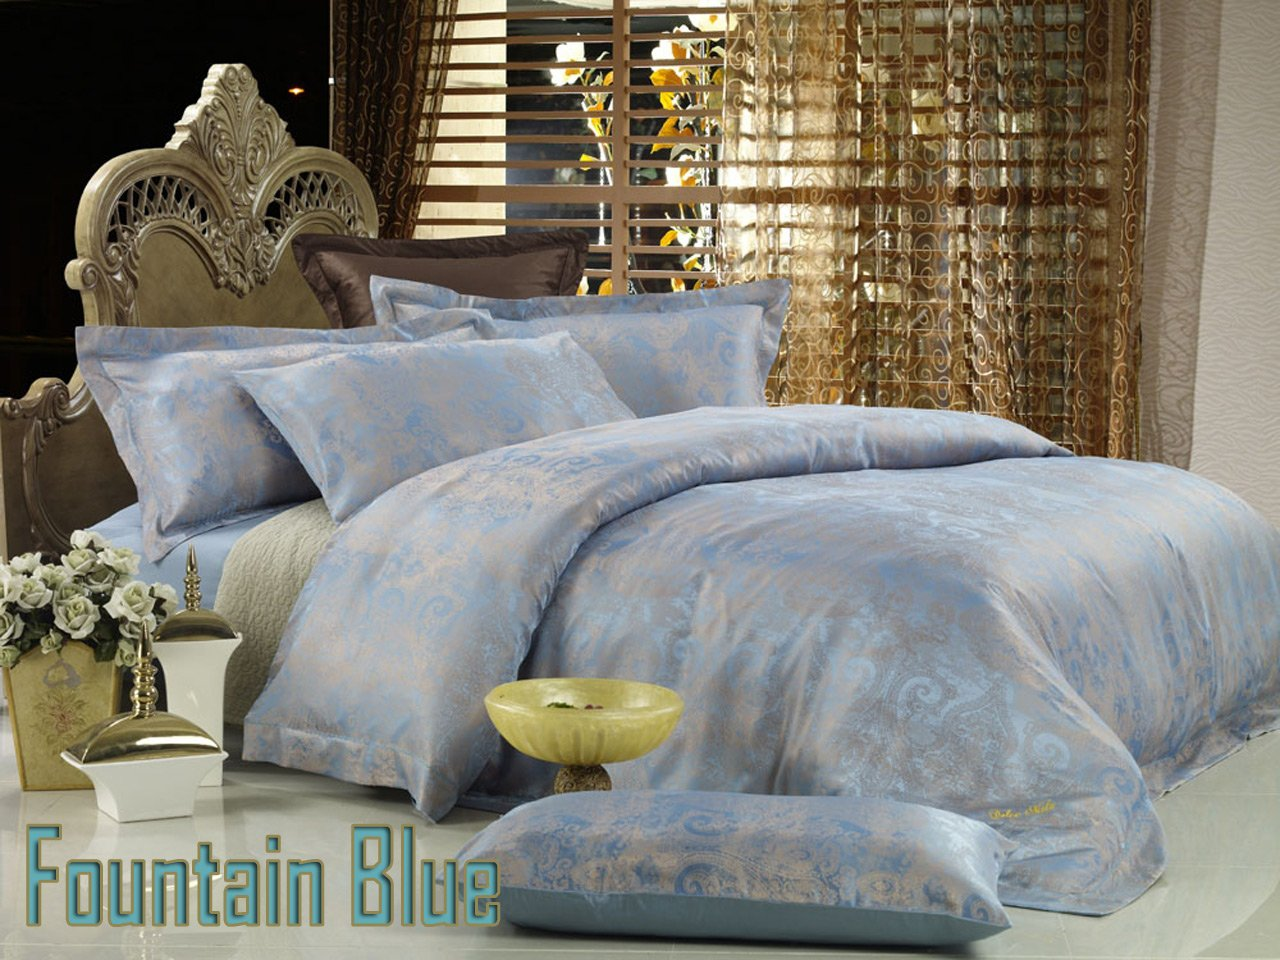 Fountain Blue By Dolce Mela 6 Pc King Size Egyptian